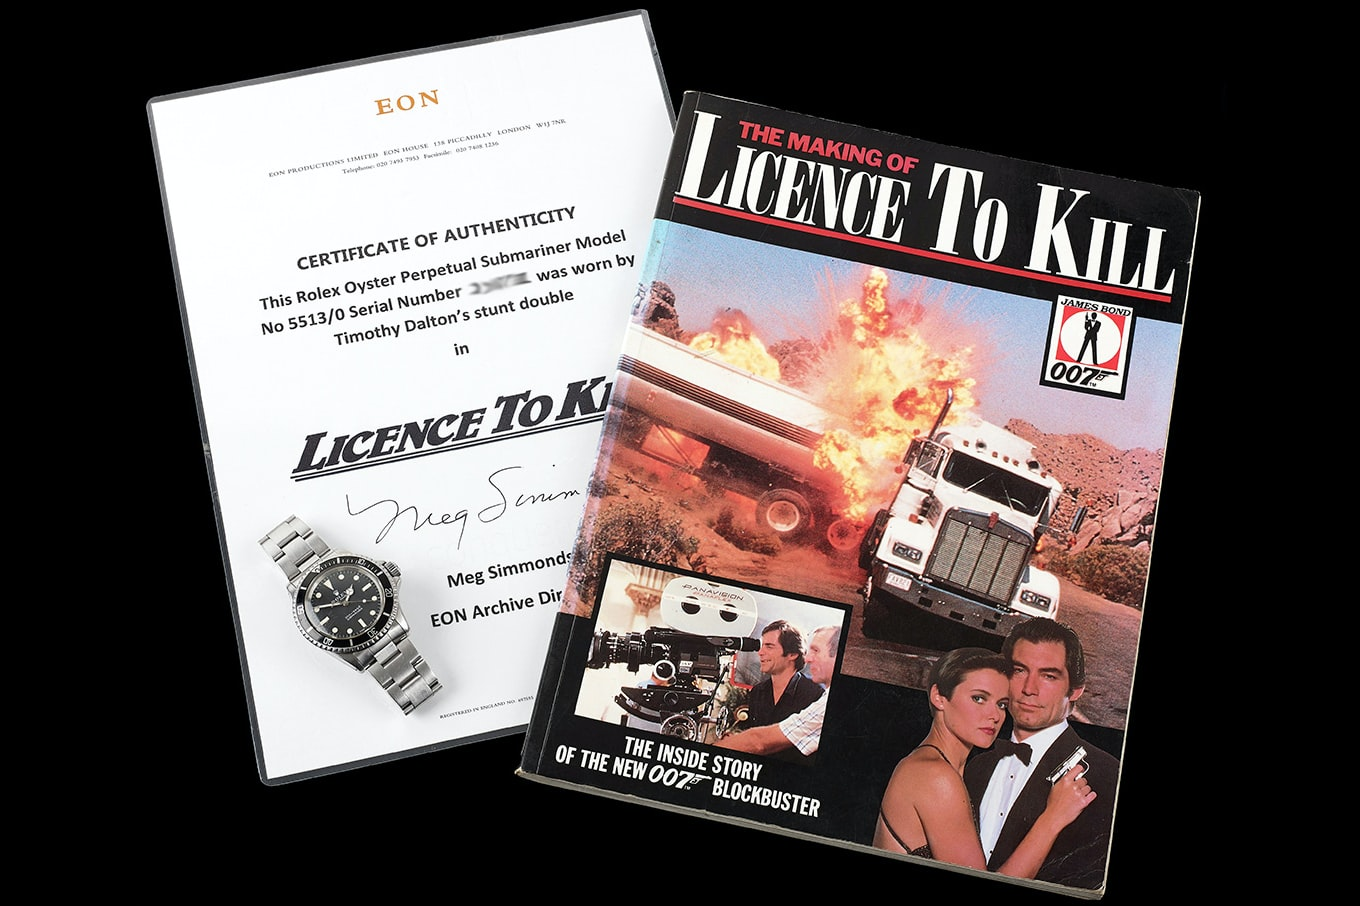 Found: James Bond's Rolex Submariner From 'A Licence To Kill' Is Up For Auction bond 2